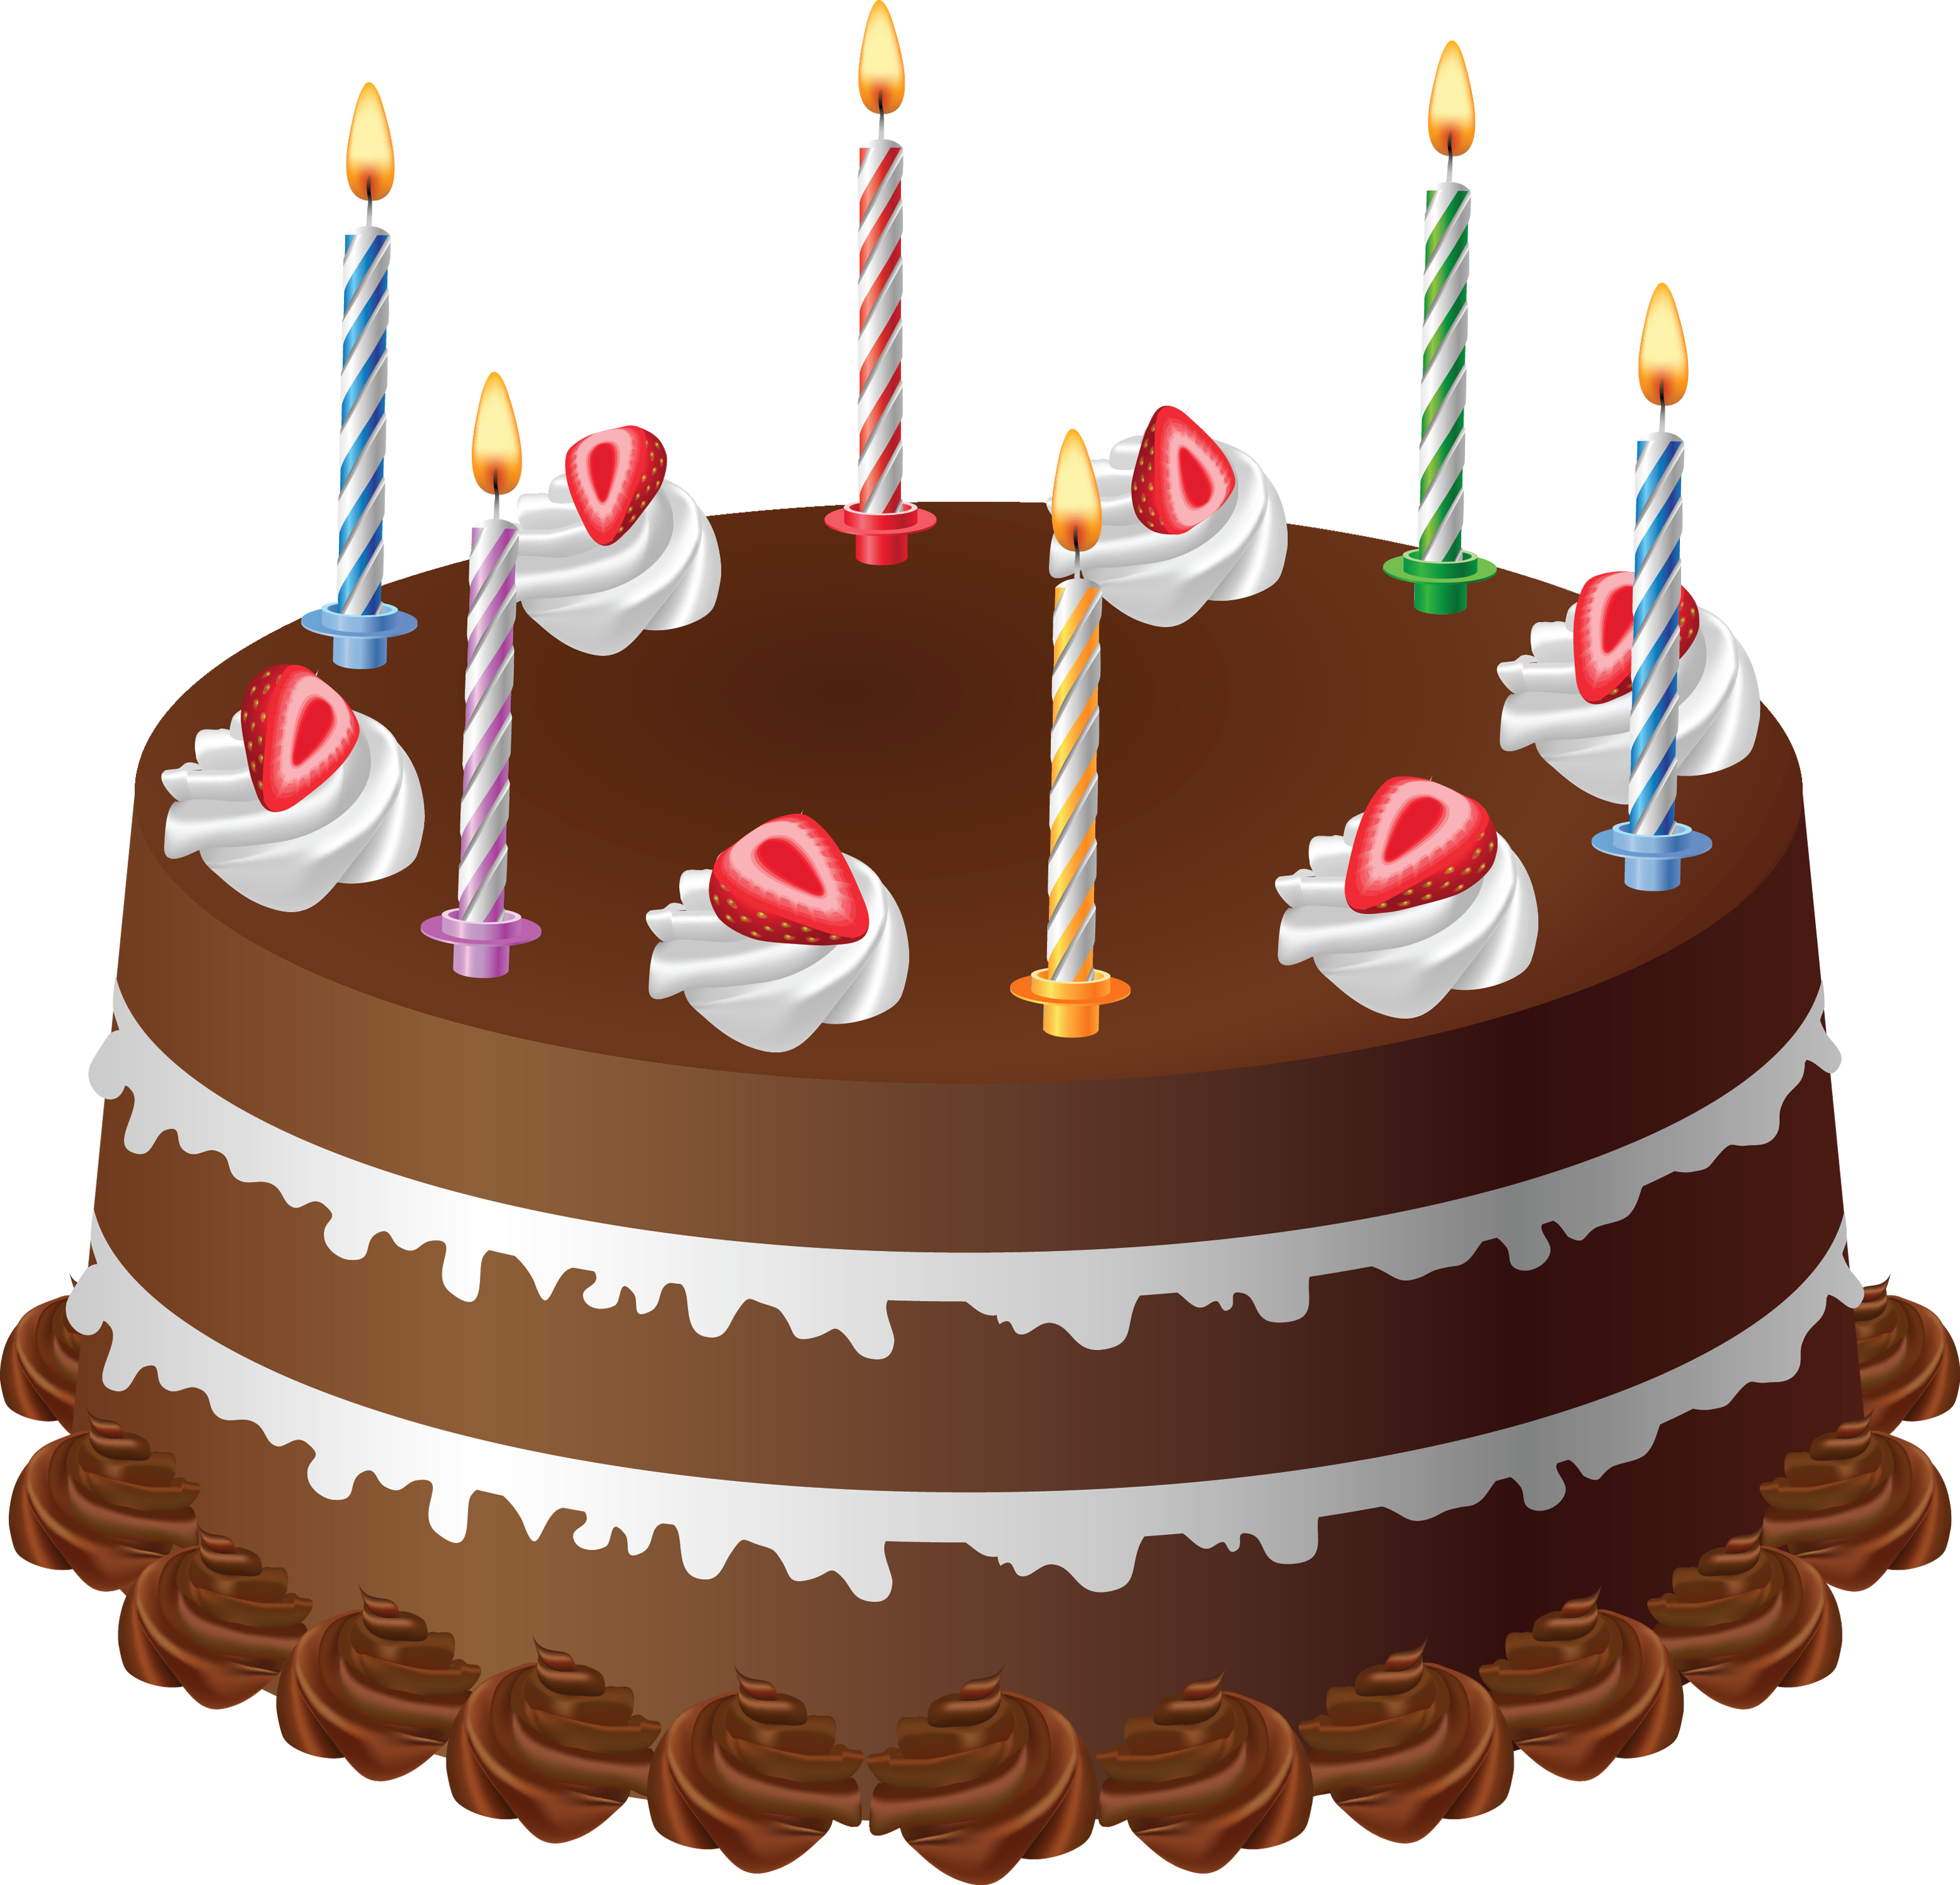 Birthday cake with candles png. Chocolate art large picture